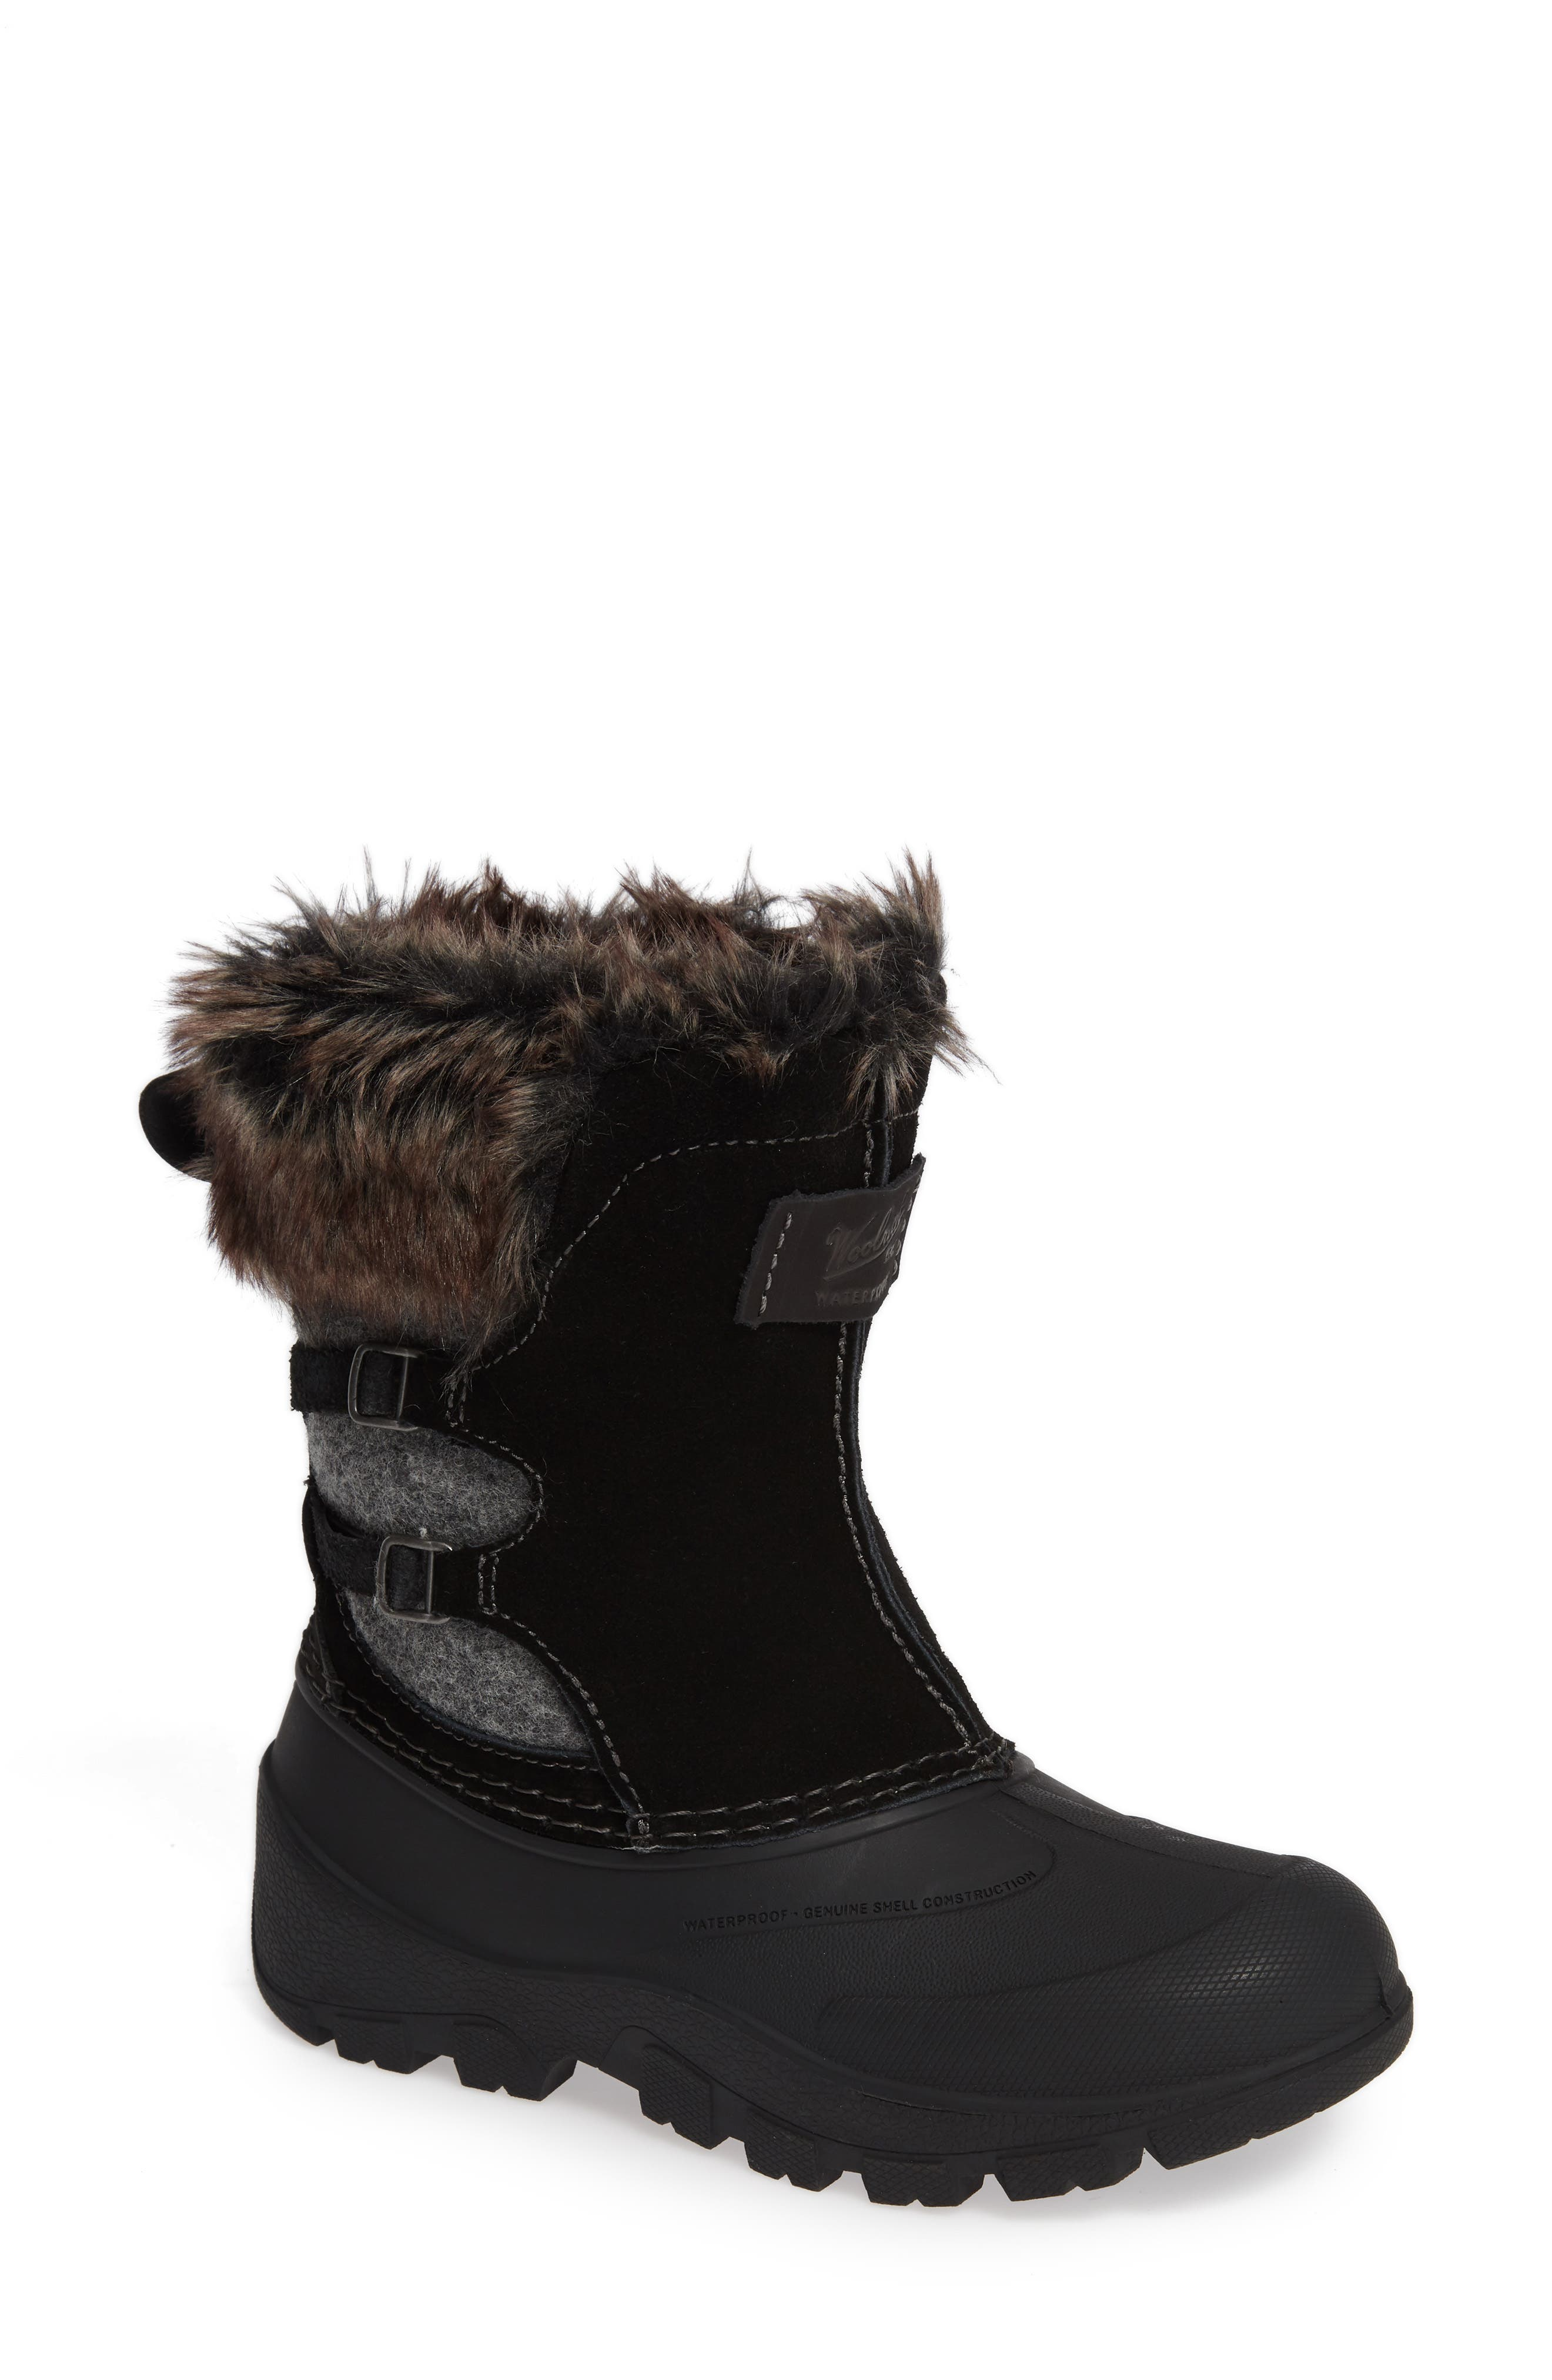 Icecat II Fully Wooly Waterproof Insulated Winter Boot,                             Main thumbnail 1, color,                             BLACK WOOL